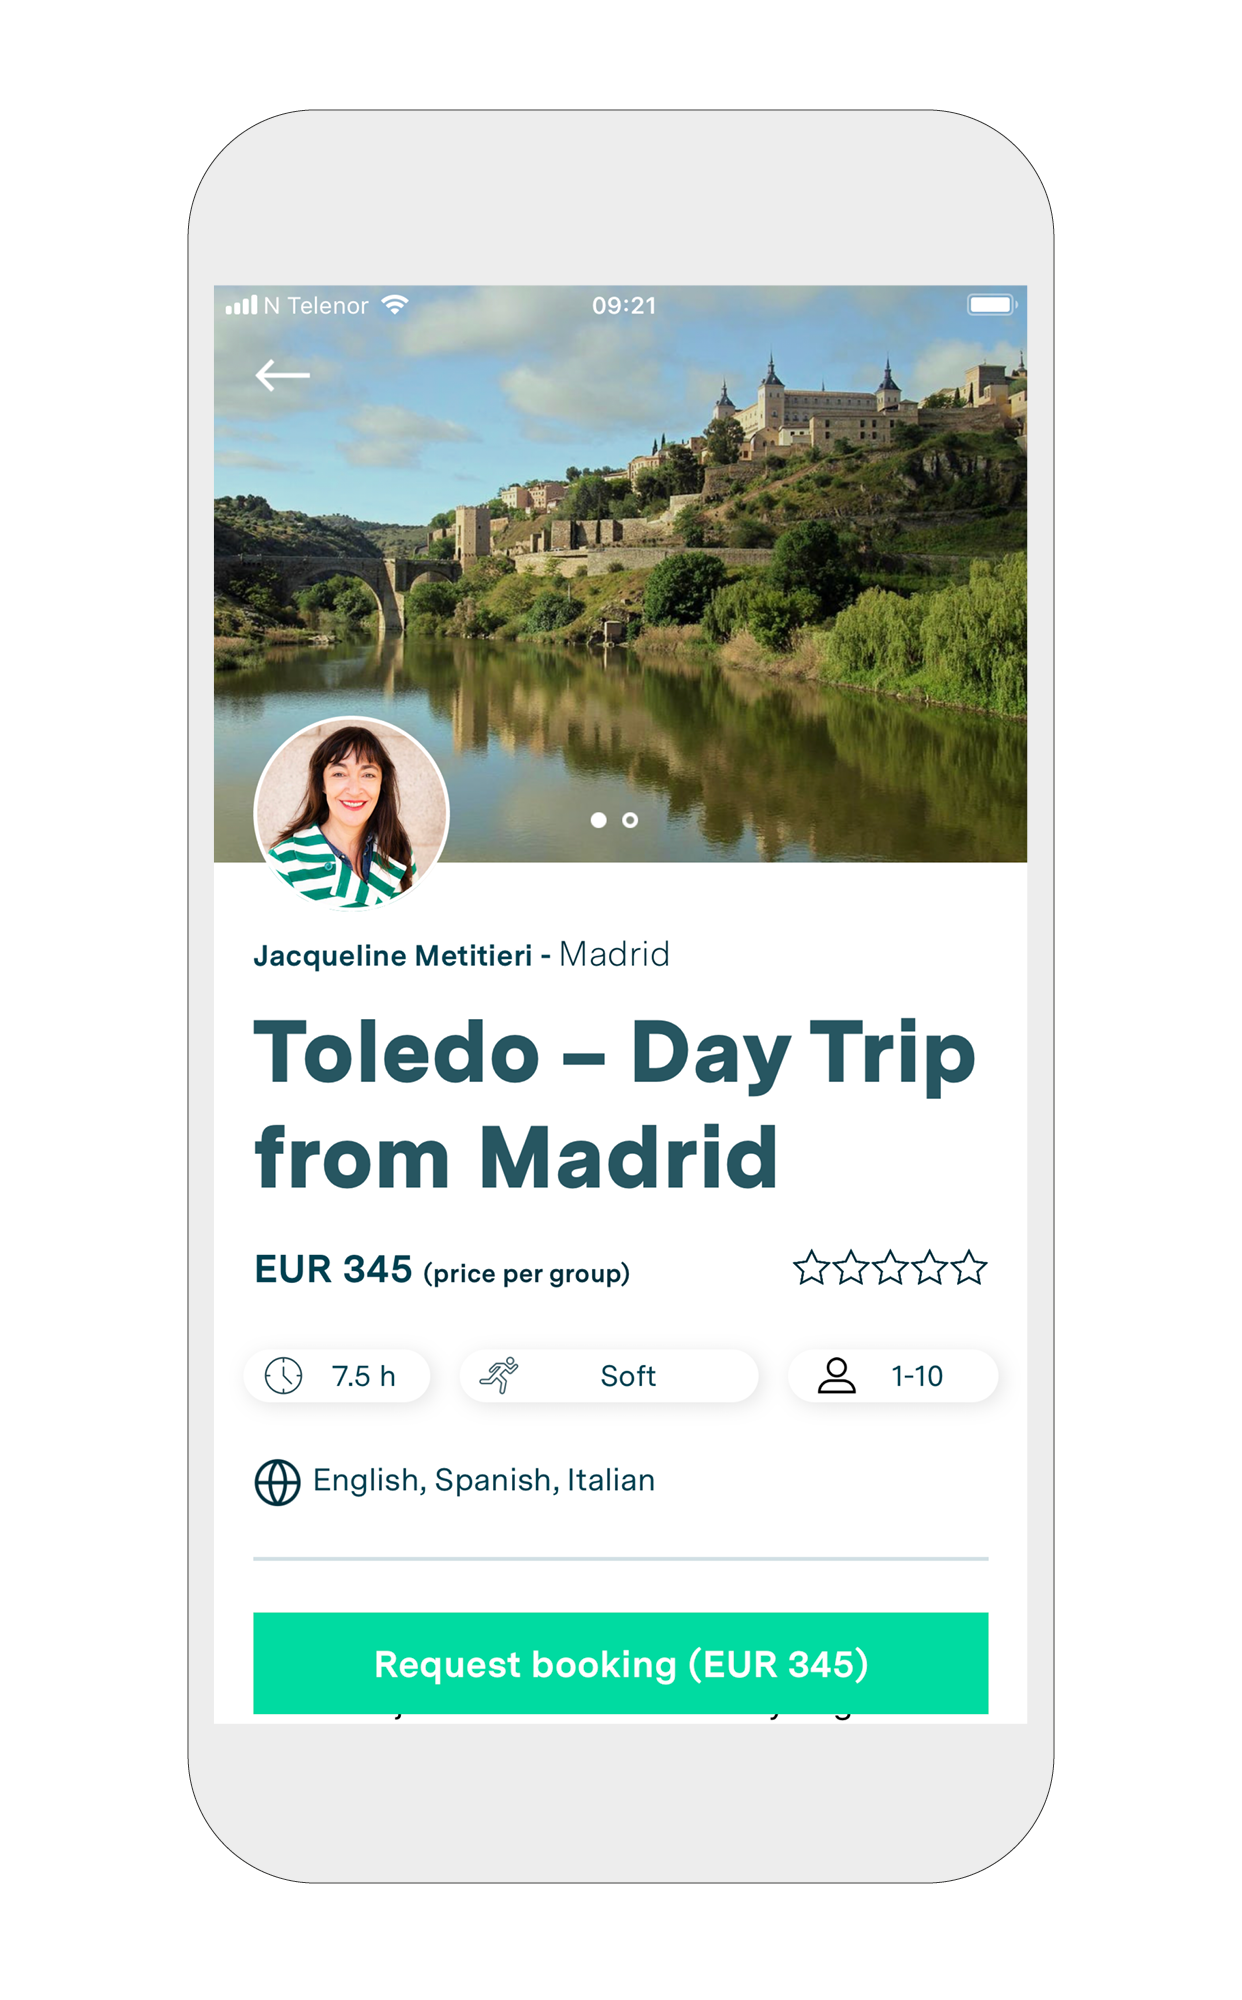 """3. Choose your experience - Read about your desired experience and the guide. If you wish to proceed and book the tour, hit the """"Request booking"""" button."""